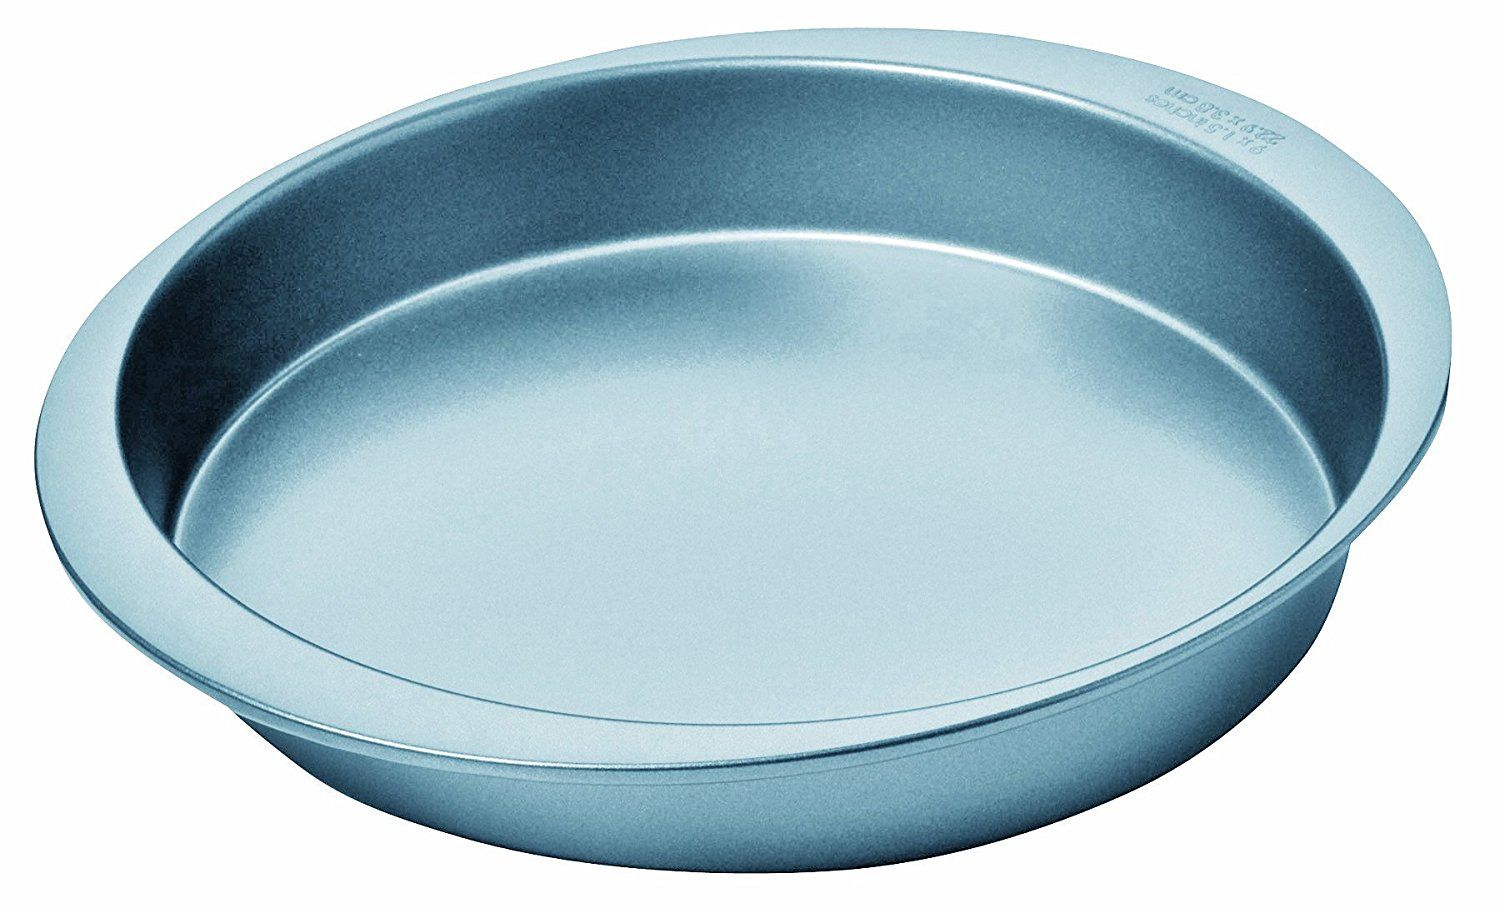 25+ 9 inch cake pan woolworths inspirations